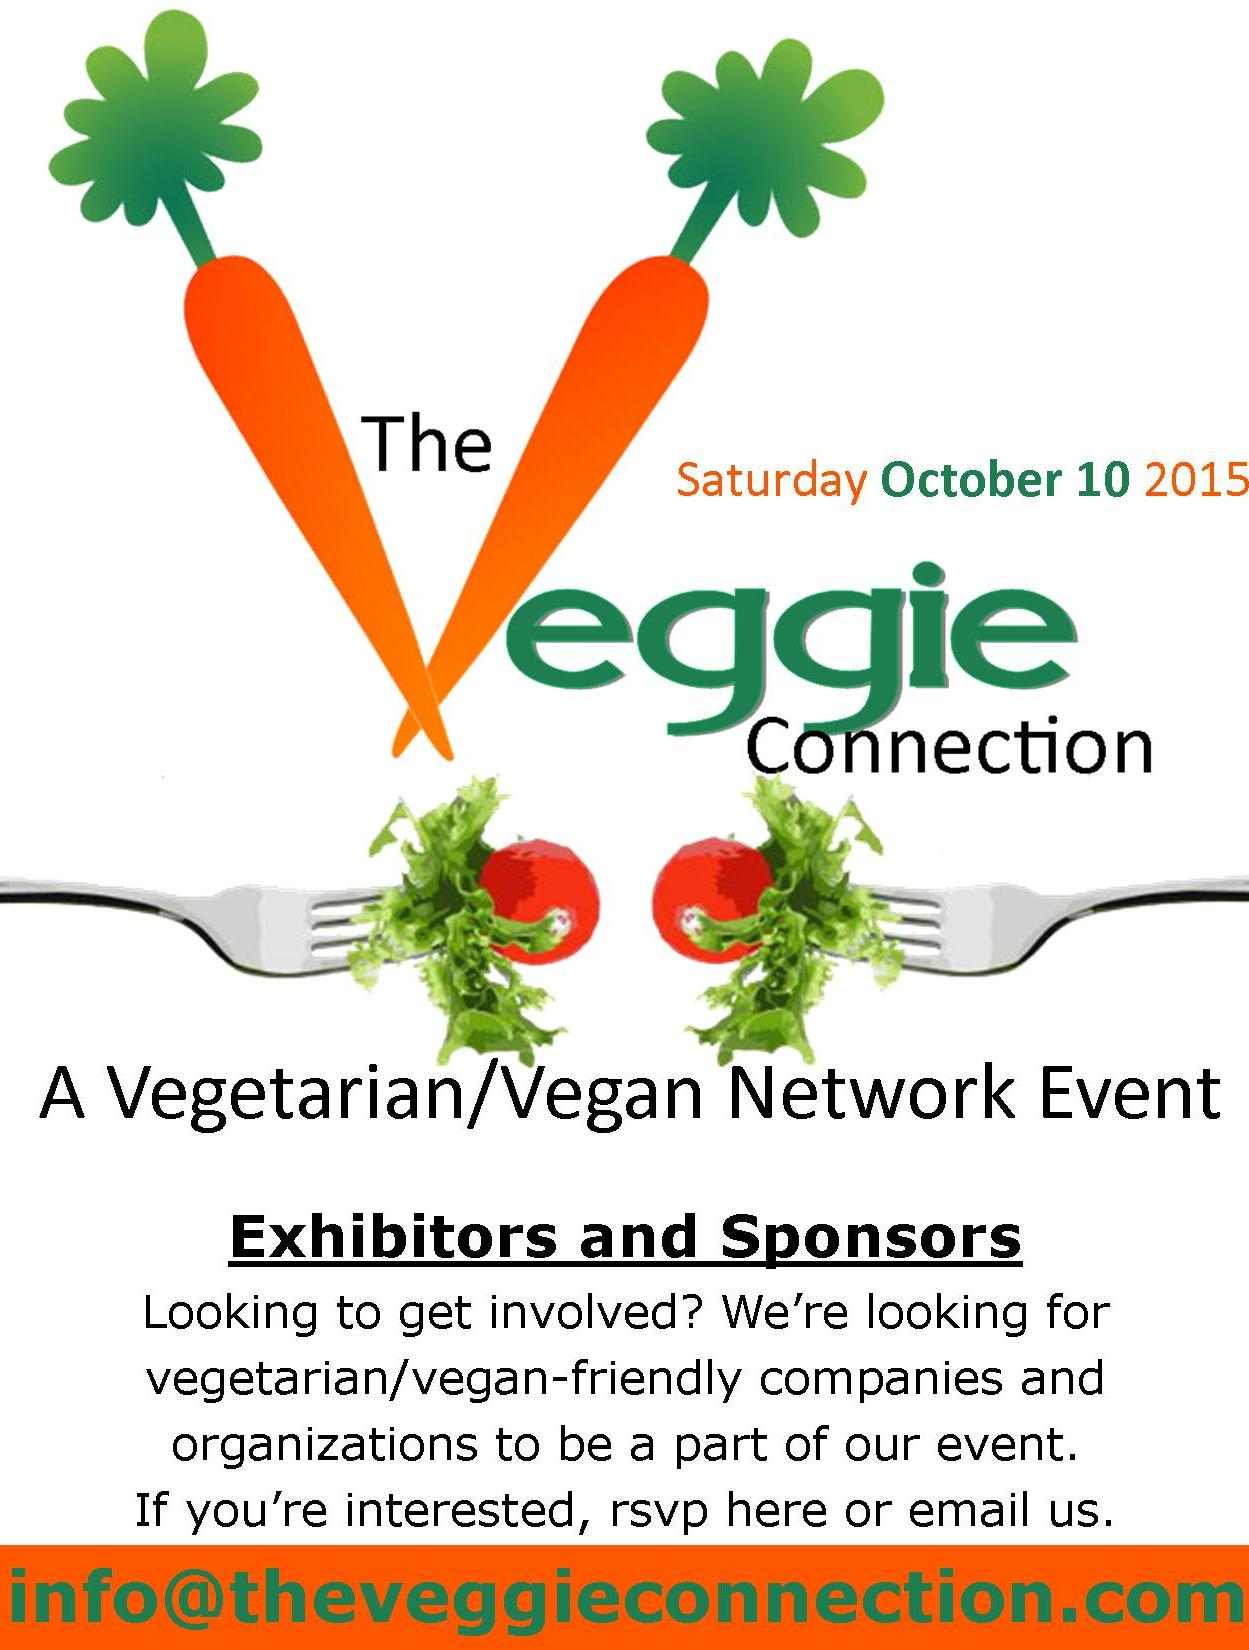 veggie connection Mark your calendars and get ready for a day of engaging speakers, delicious food, a vendor marketplace and fun for all ages.